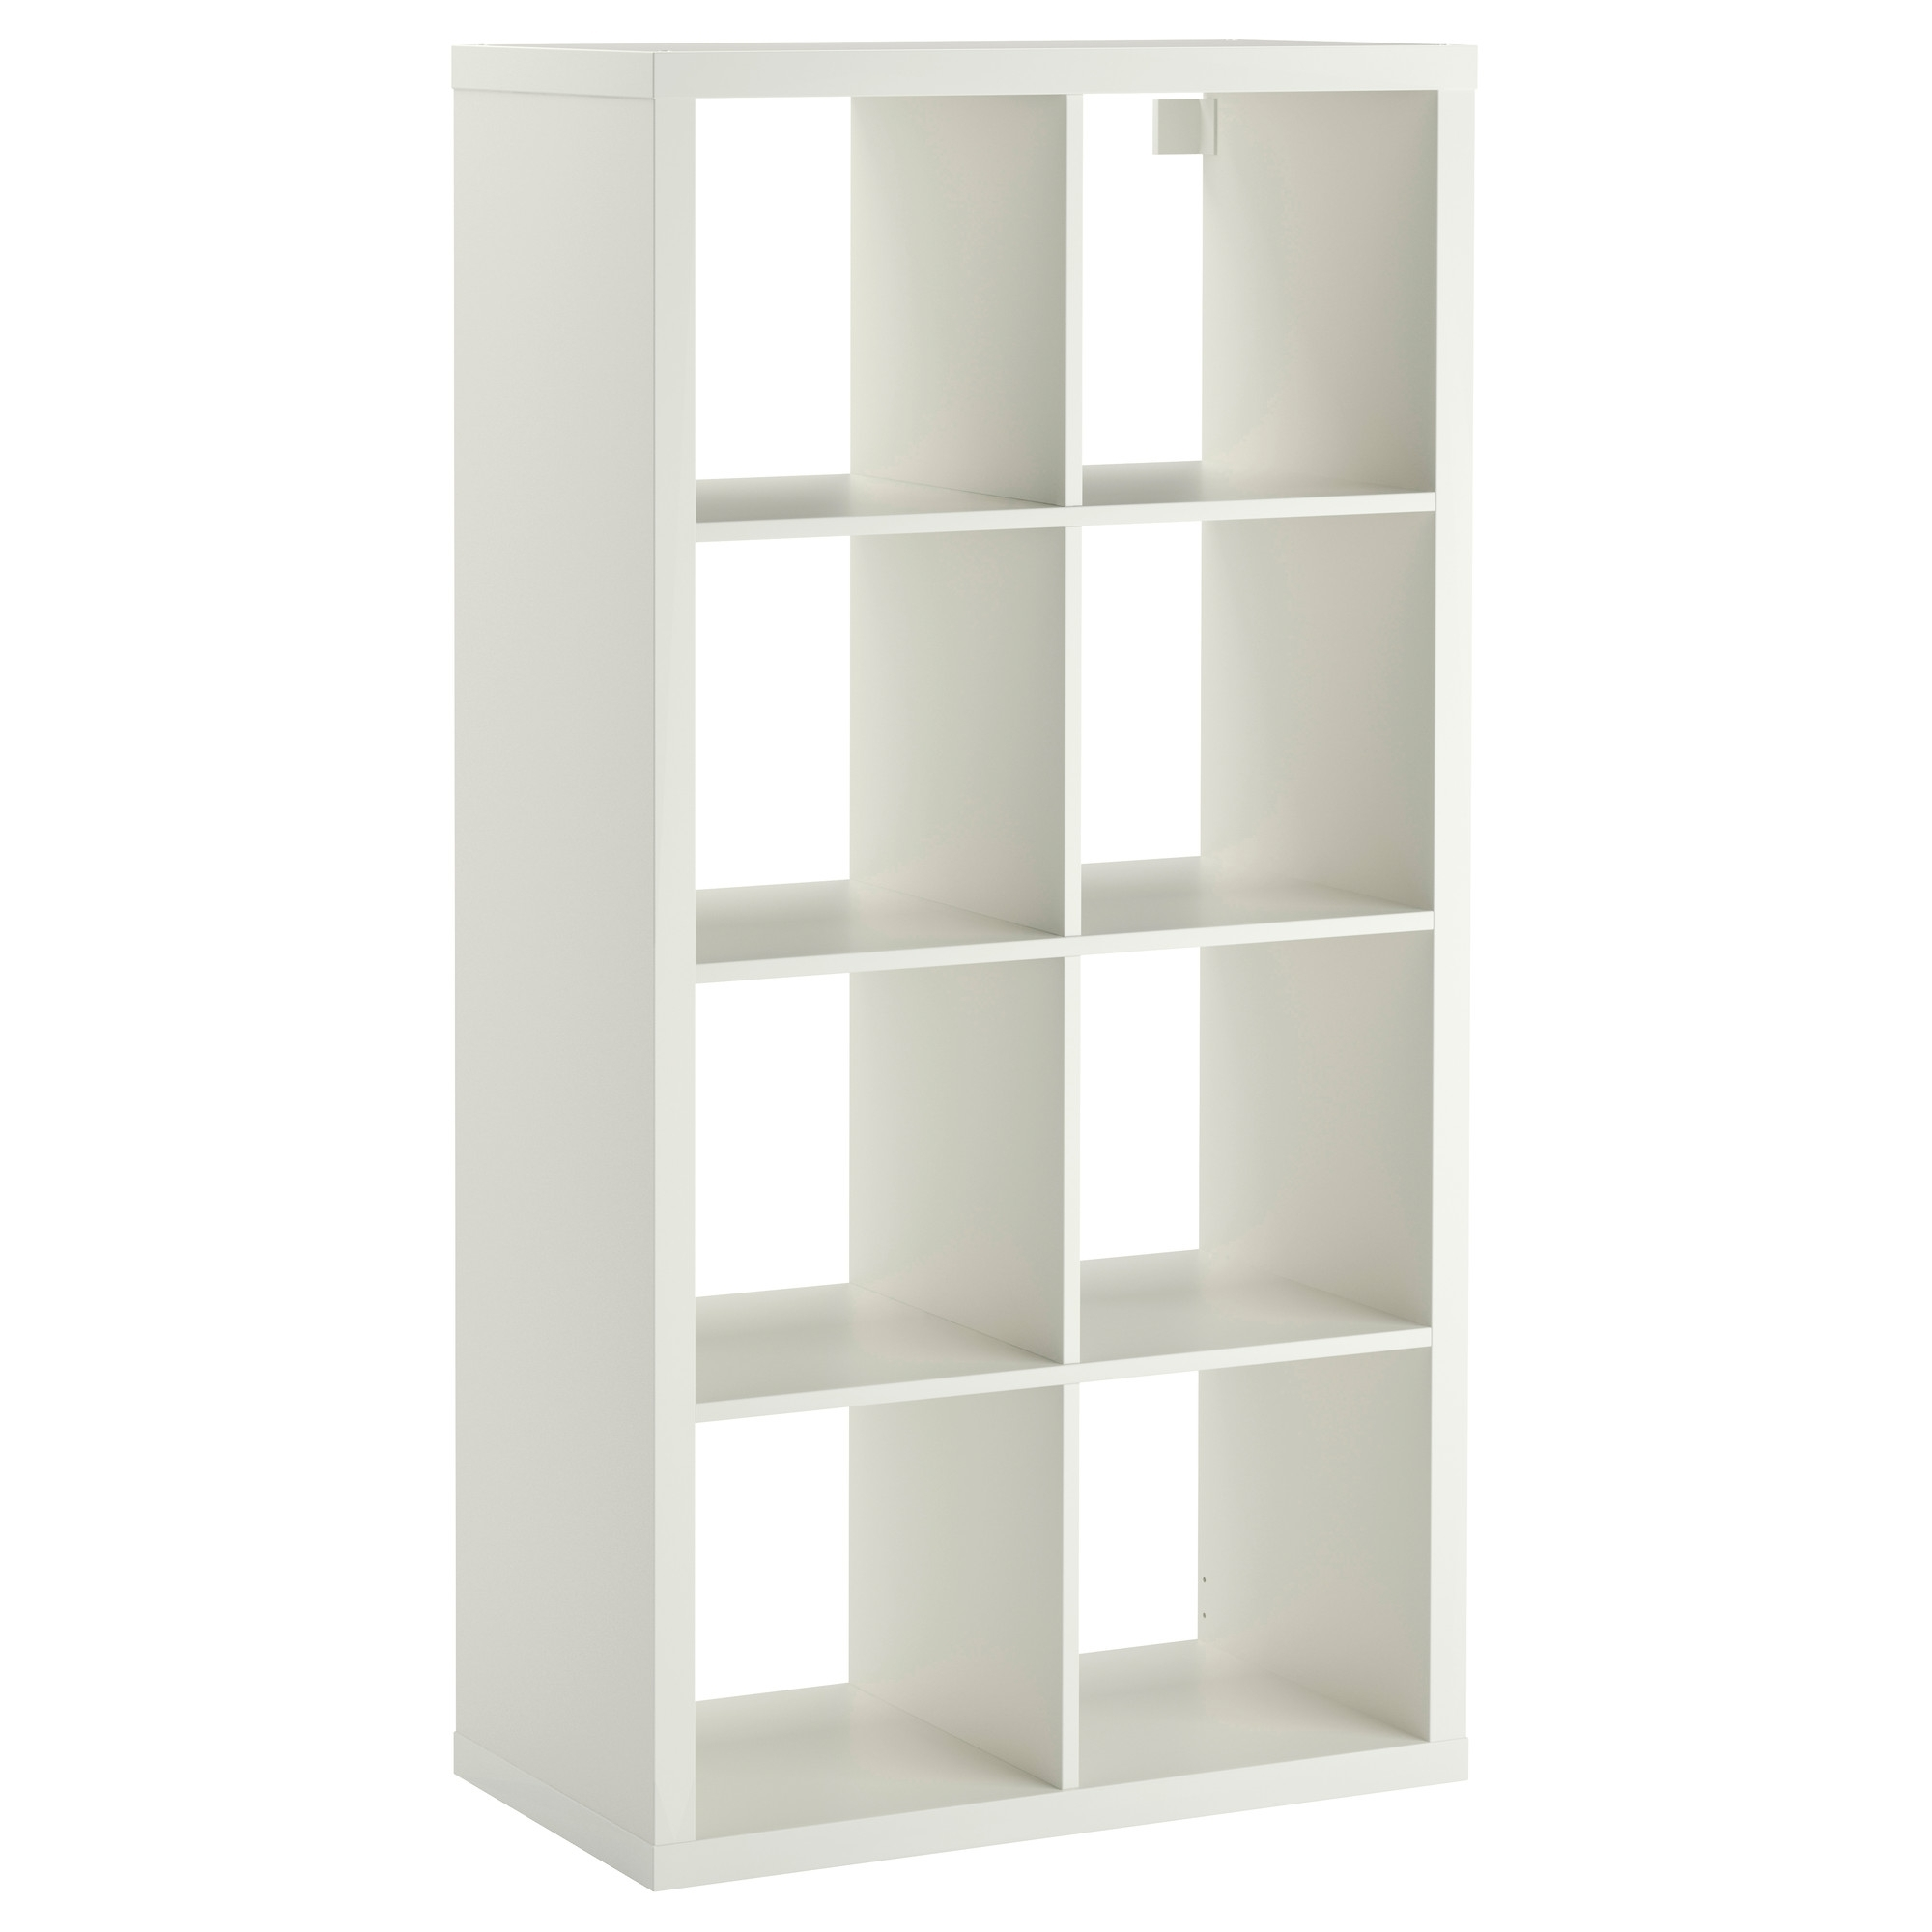 Popular Ikea White Bookcases Regarding Kallax Shelf Unit – High Gloss White – Ikea (View 7 of 15)